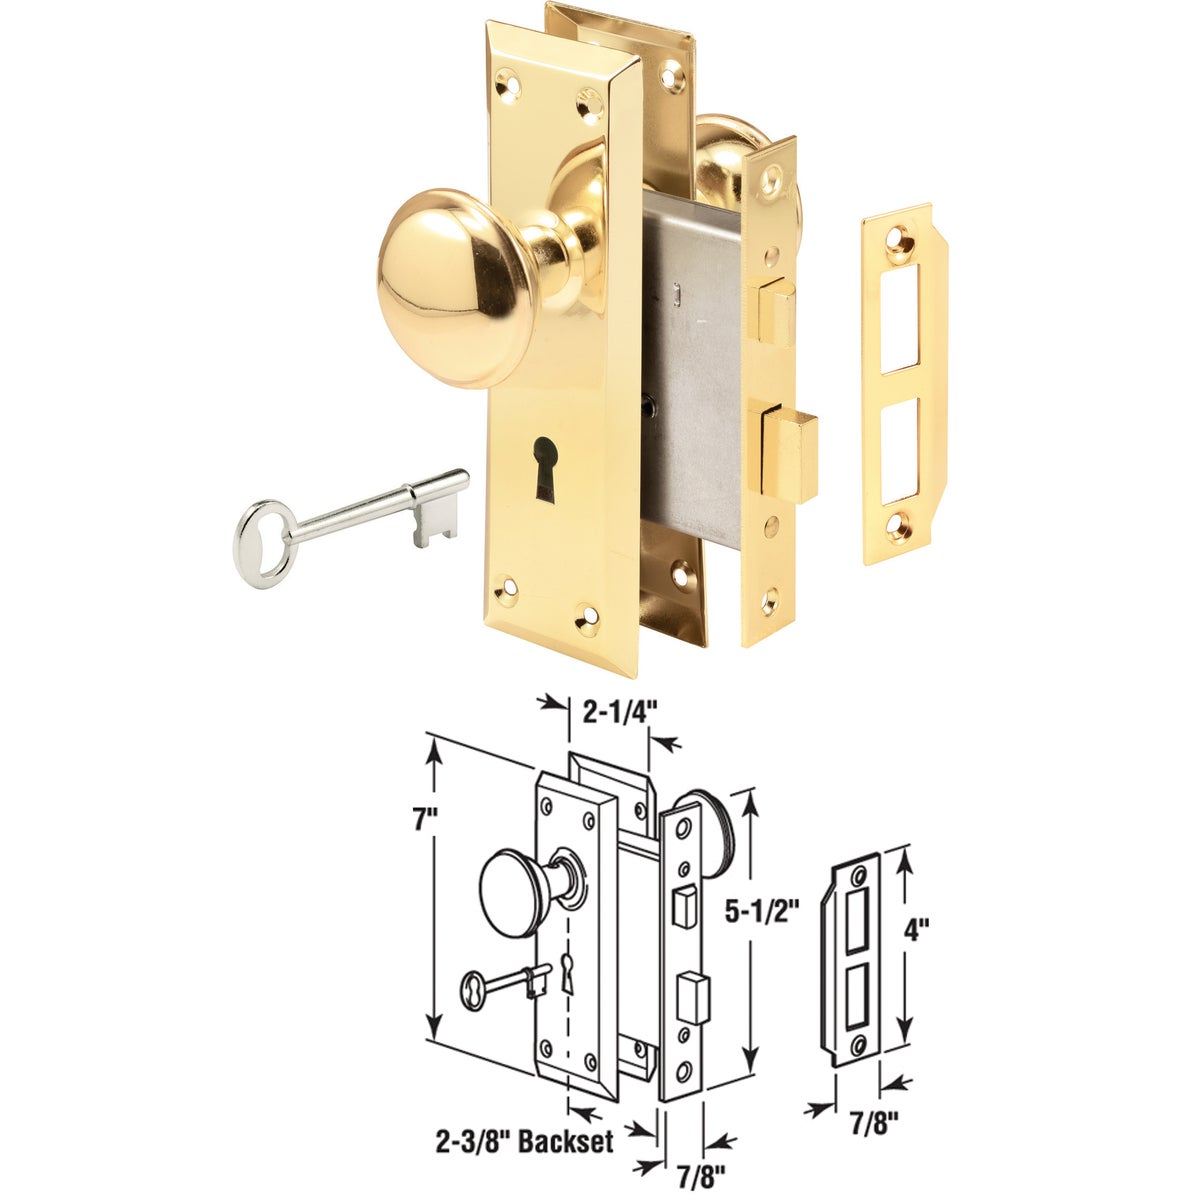 BIT KEY MORTISE LOCKSET - E 2293 by Prime Line Products